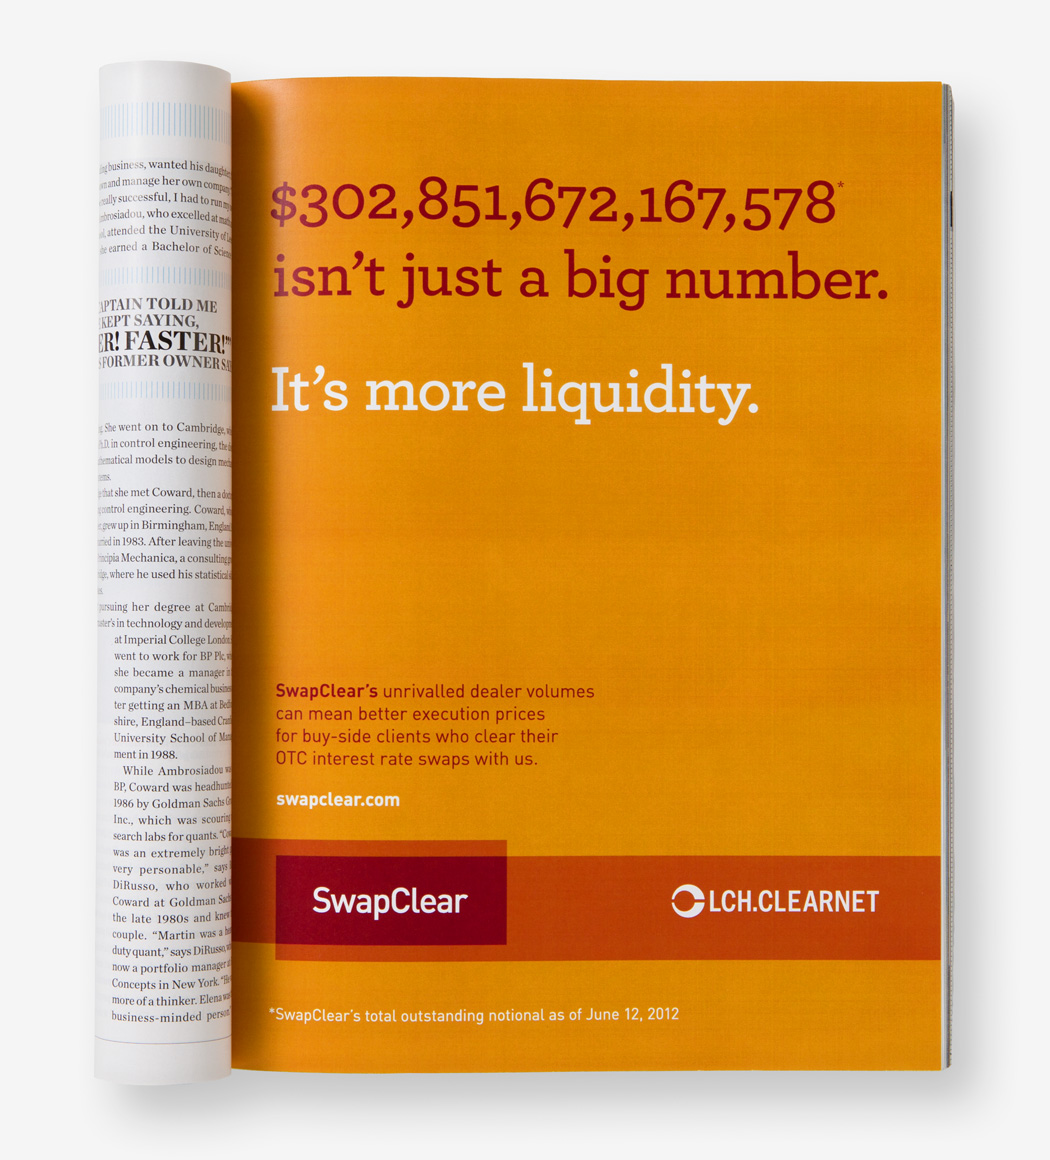 A Swapclear magazine ad with the text, 302,851,672,167,578 isn't just a big number. It's more liquidity.